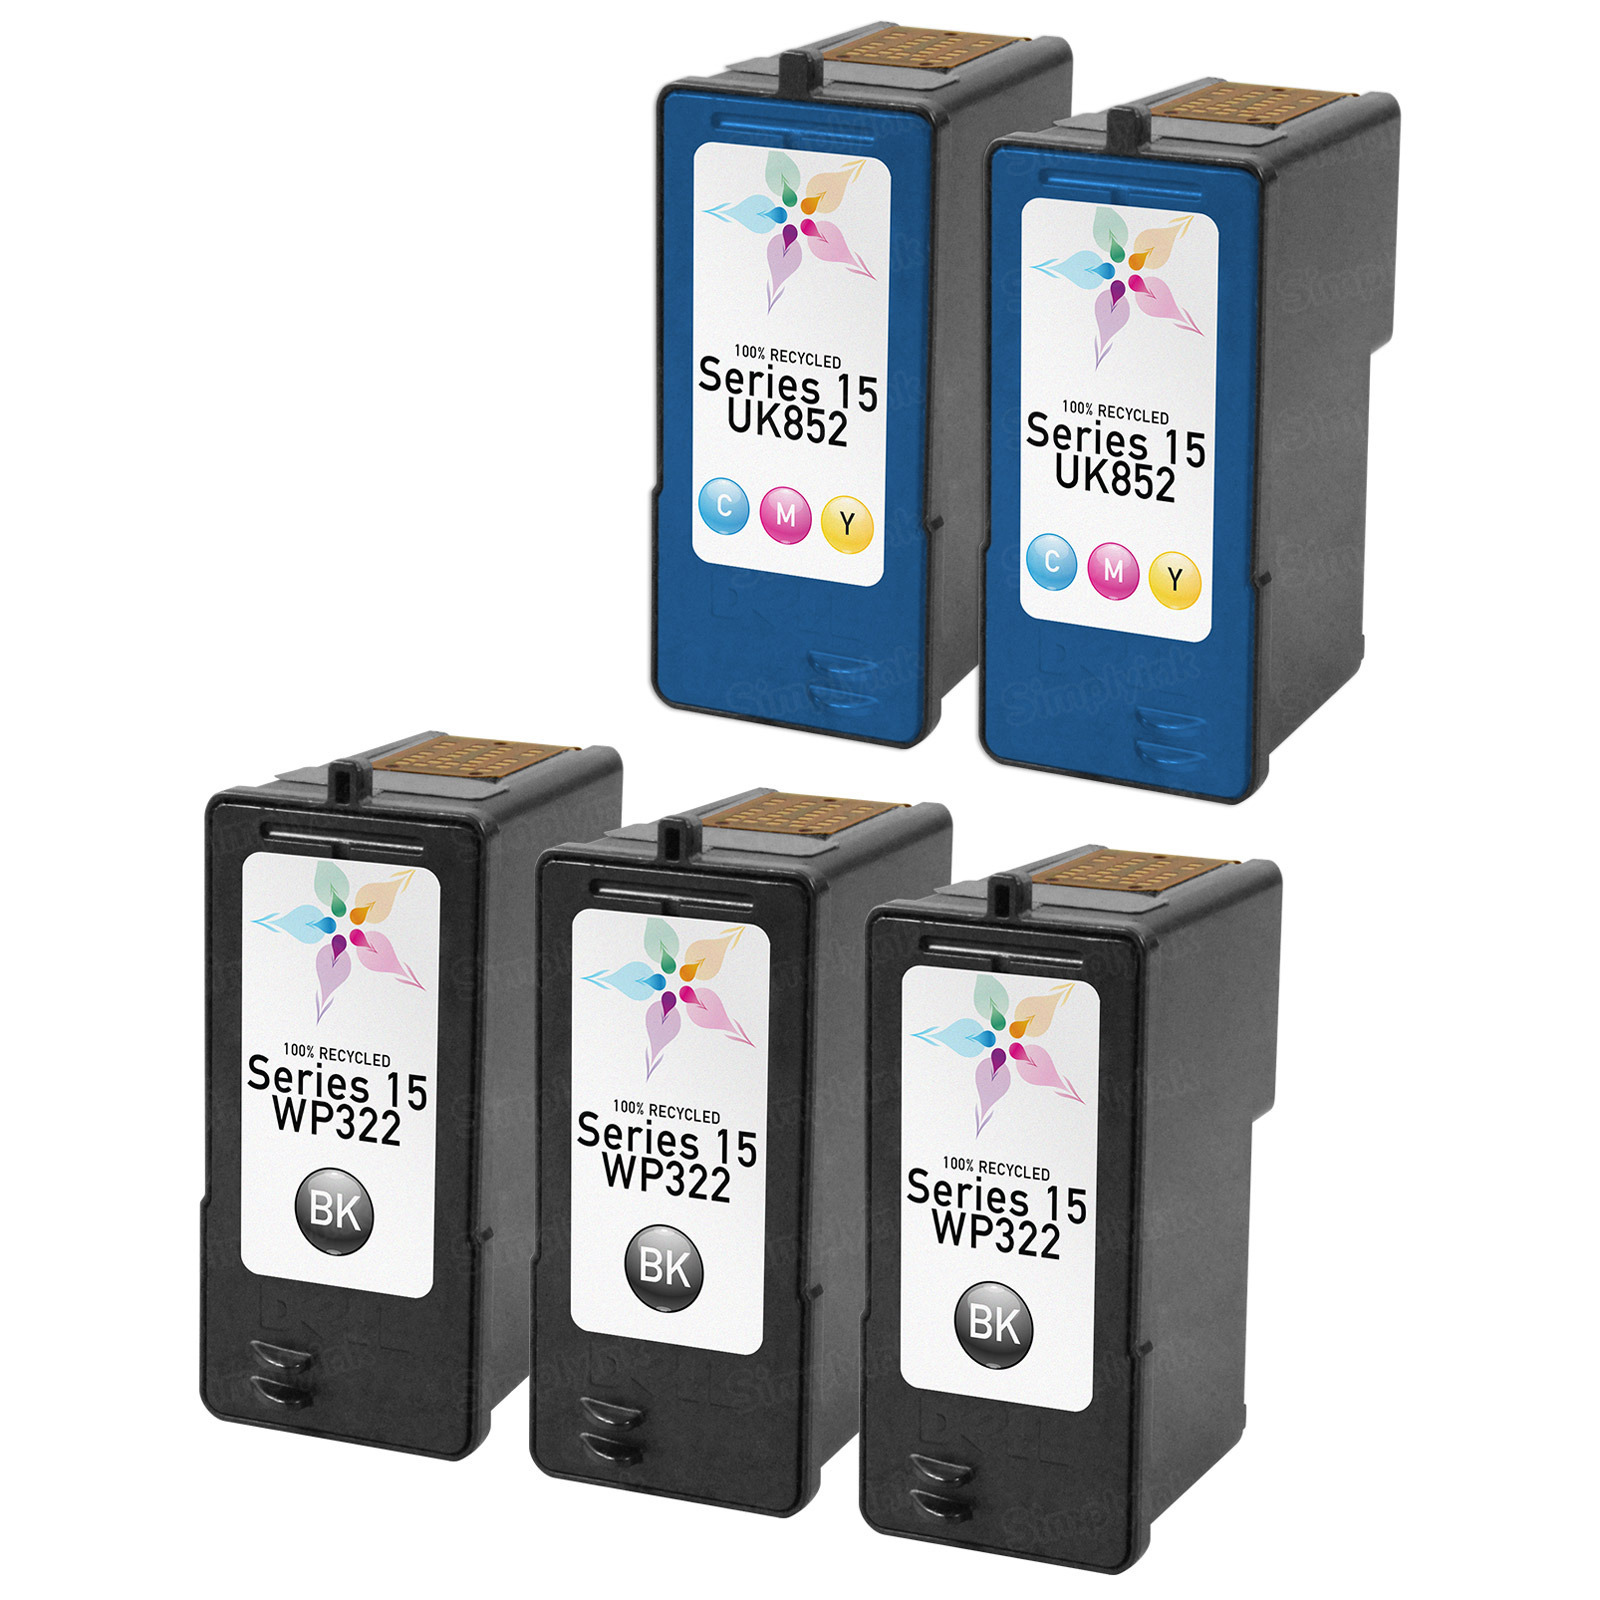 Inkjet Supplies for Dell Printers - Remanufactured Bulk Set of 5 Ink Cartridges 3 Black Dell WP322 (330-0868/Series 15) and 2 Color Dell UK852 330-0867/Series 15)